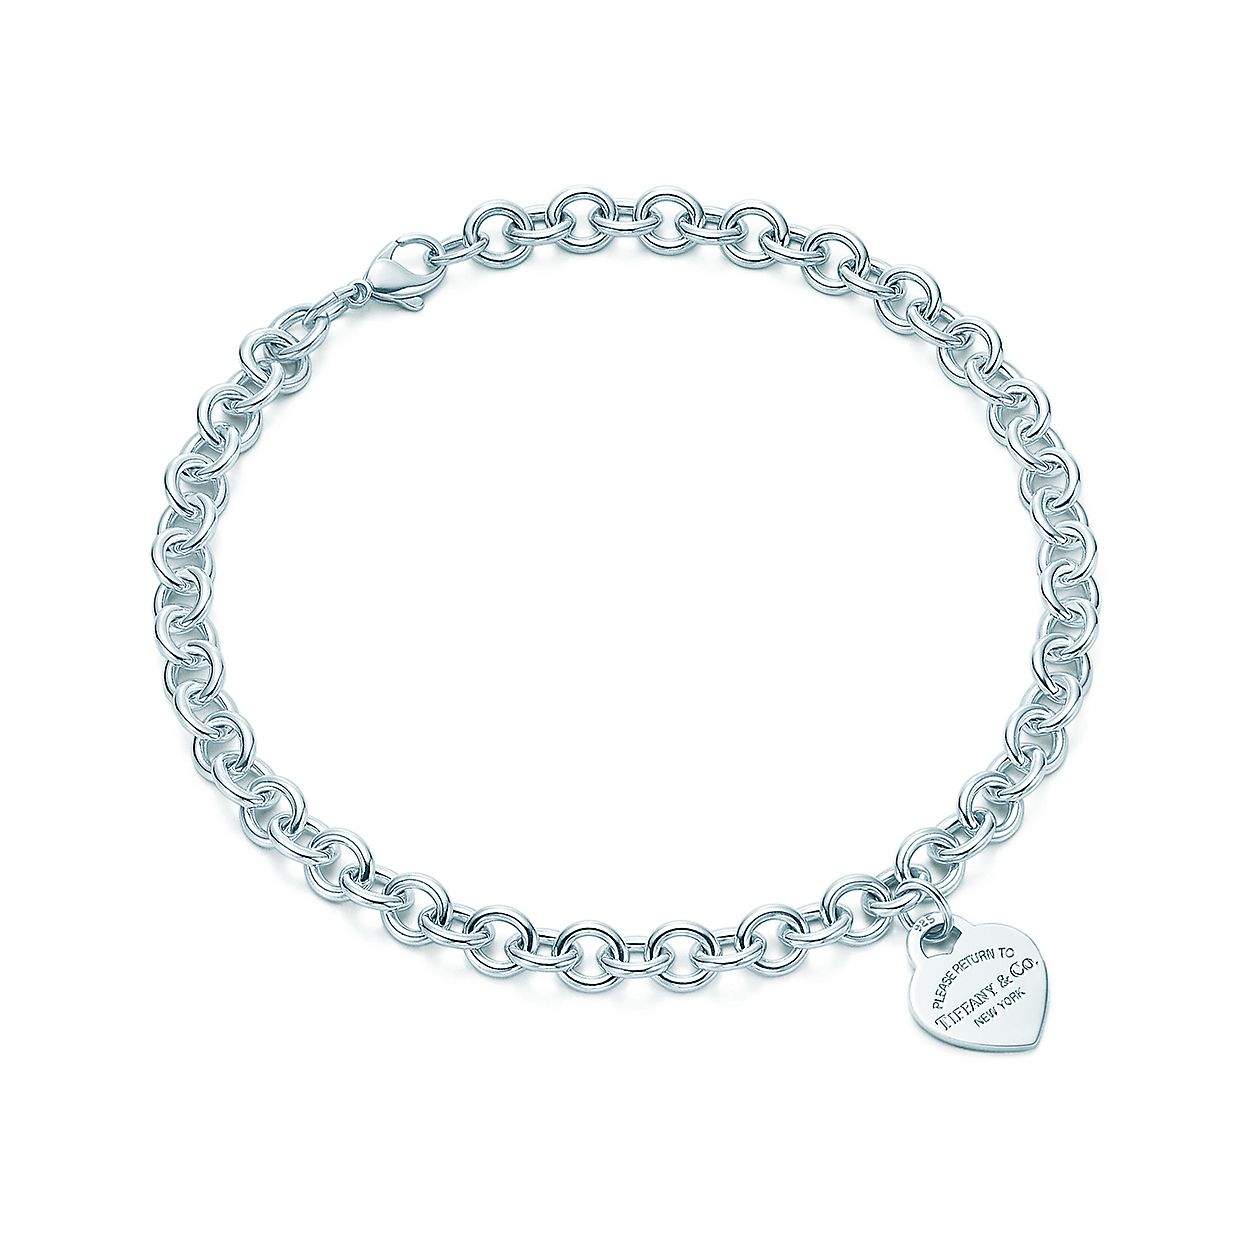 aeab00fbe Return to Tiffany® heart tag necklace in sterling silver. | Tiffany ...